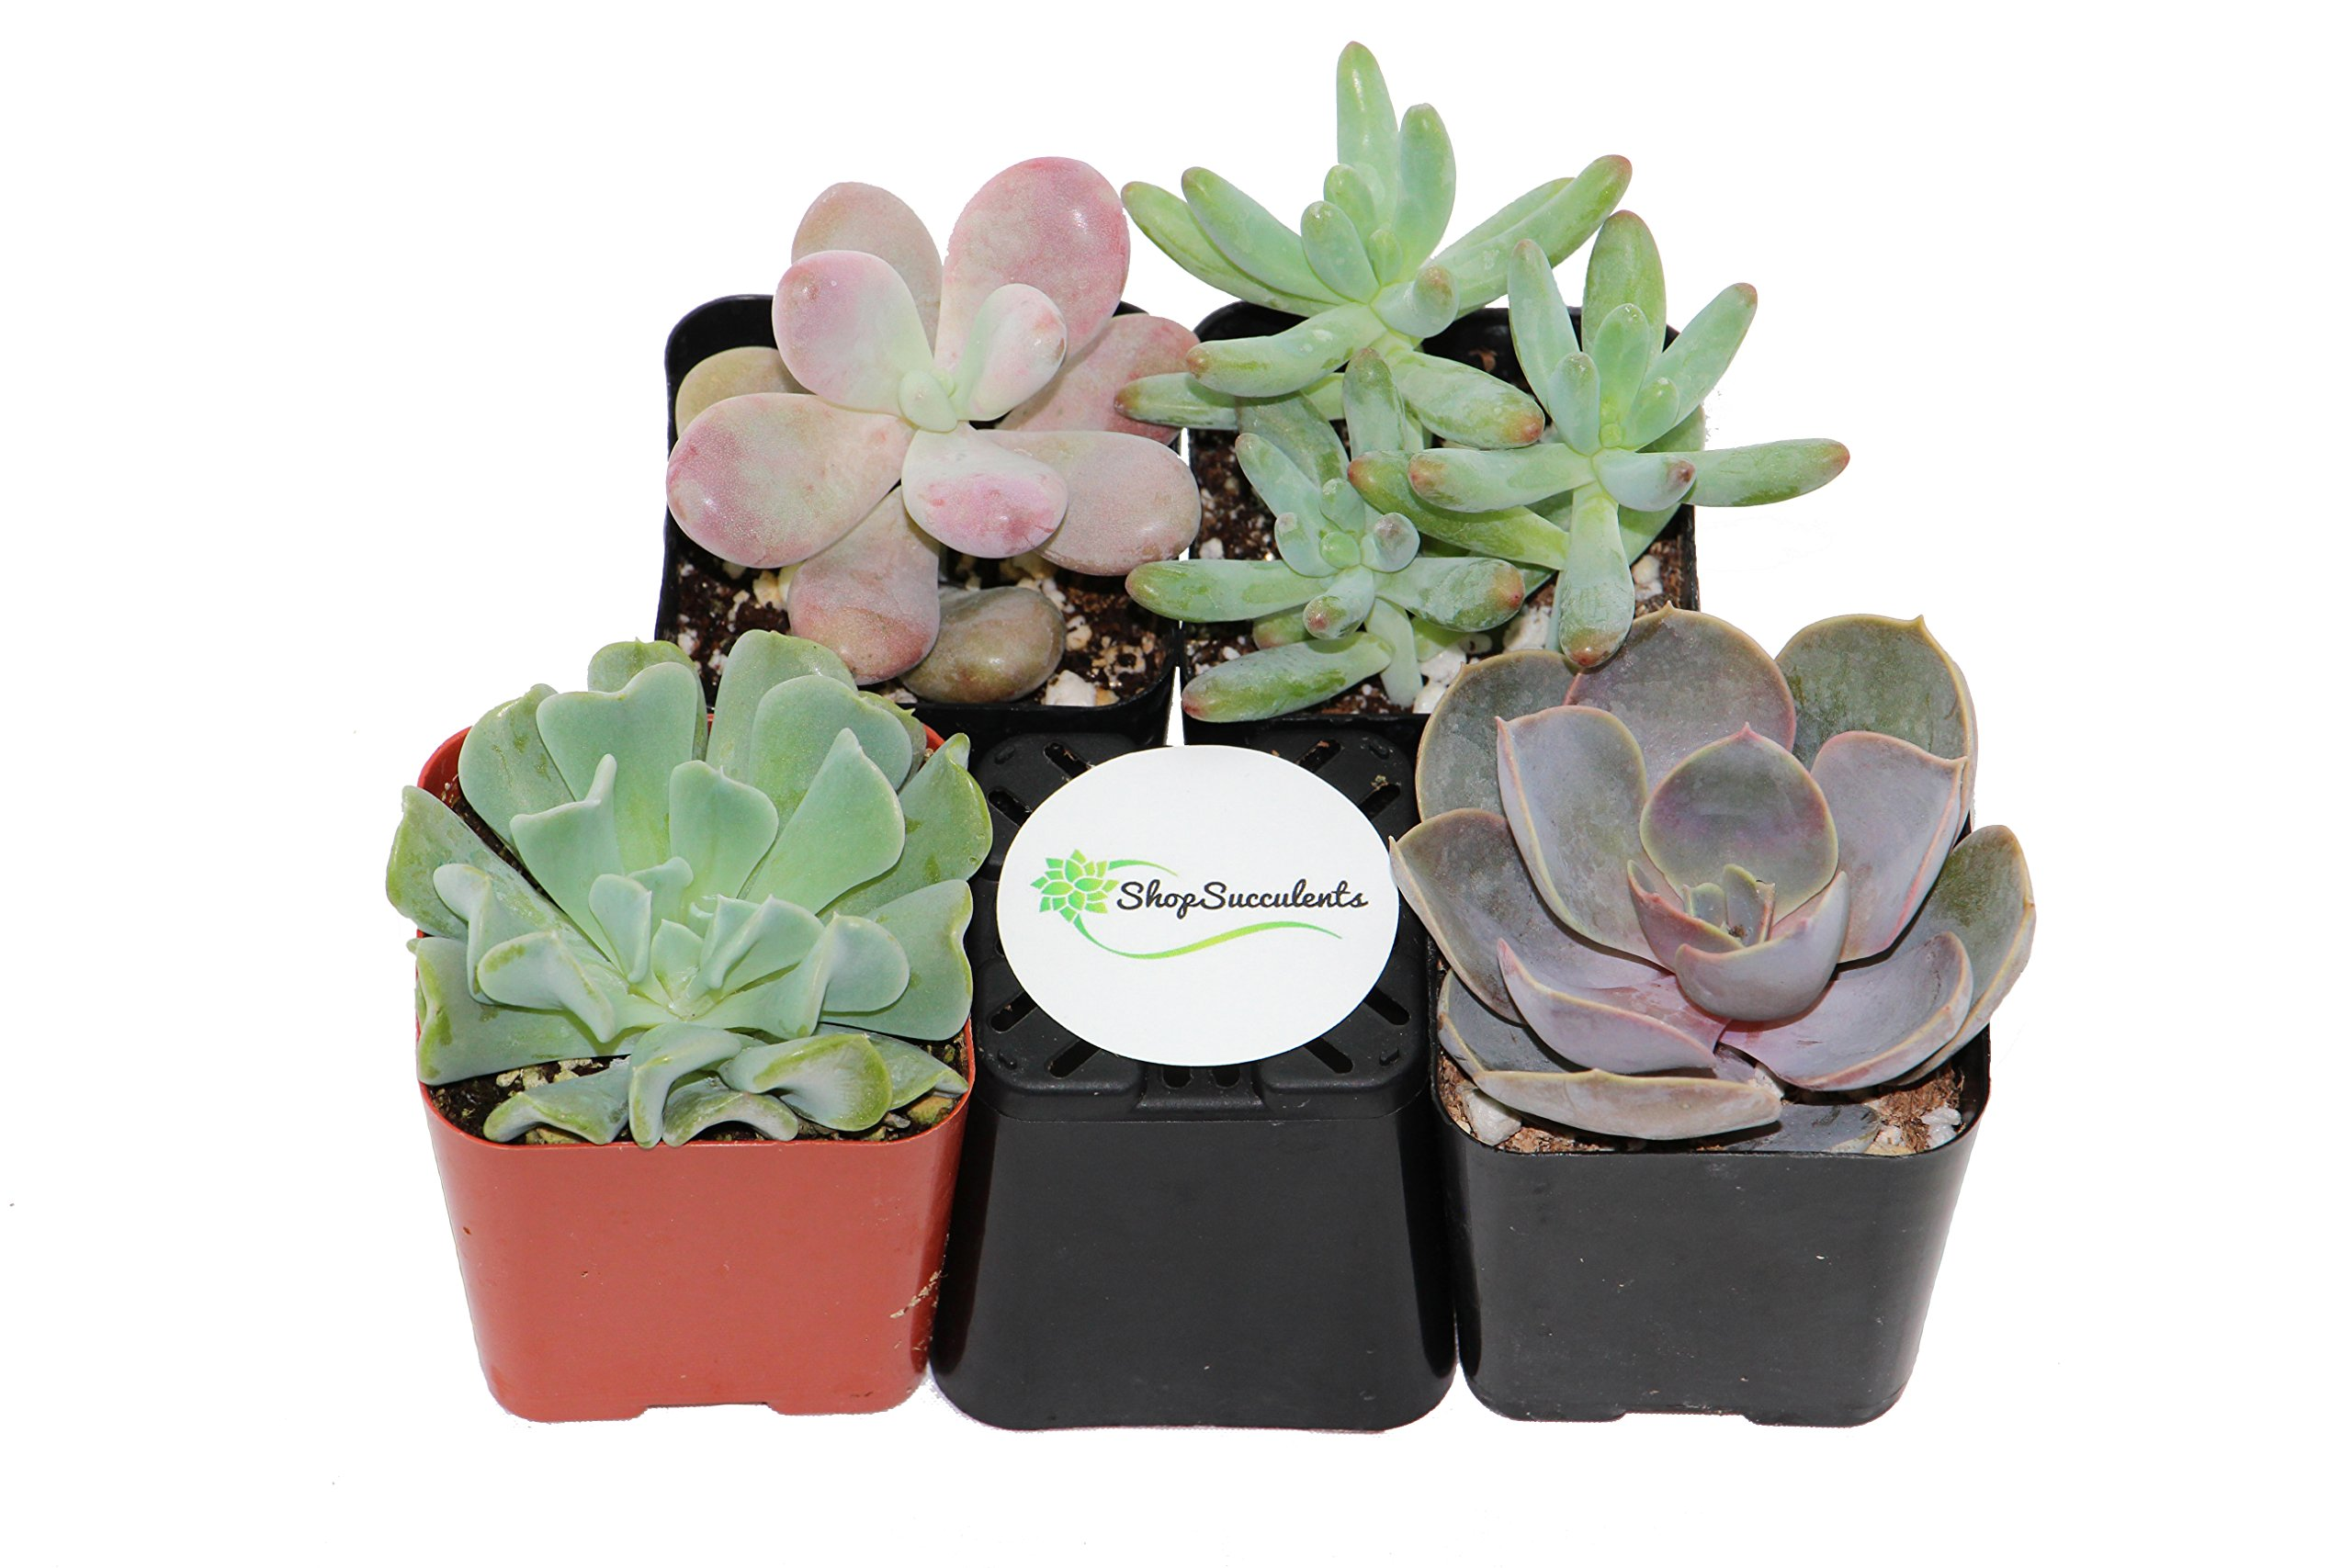 Shop Succulents Premium Pastel Succulent (Collection of 4)